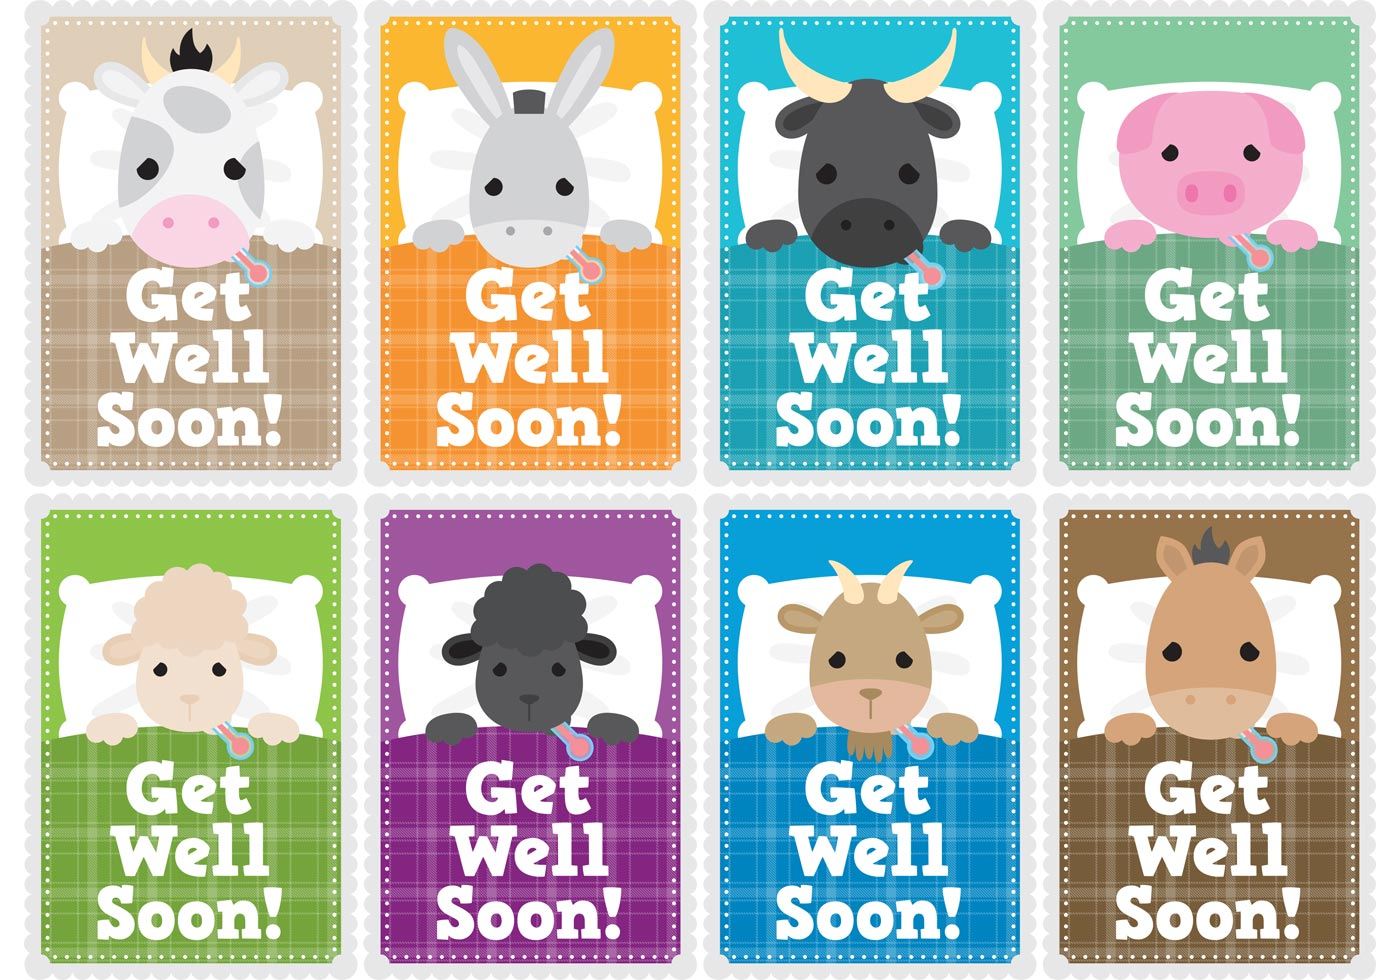 Get Well Soon Children Card Vectors Download Free Vector Art